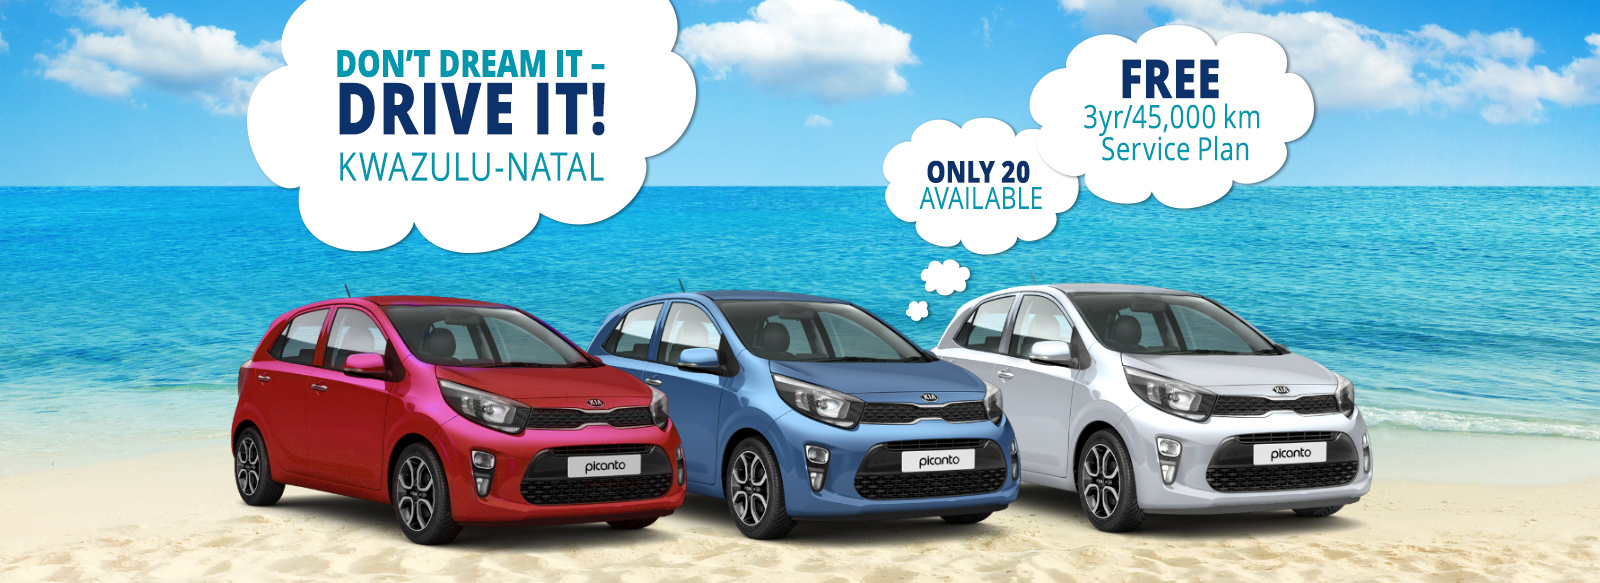 Don't dream it - Drive it! KIA Picanto specials at great prices - Only 20 available - KwaZulu-Natal only